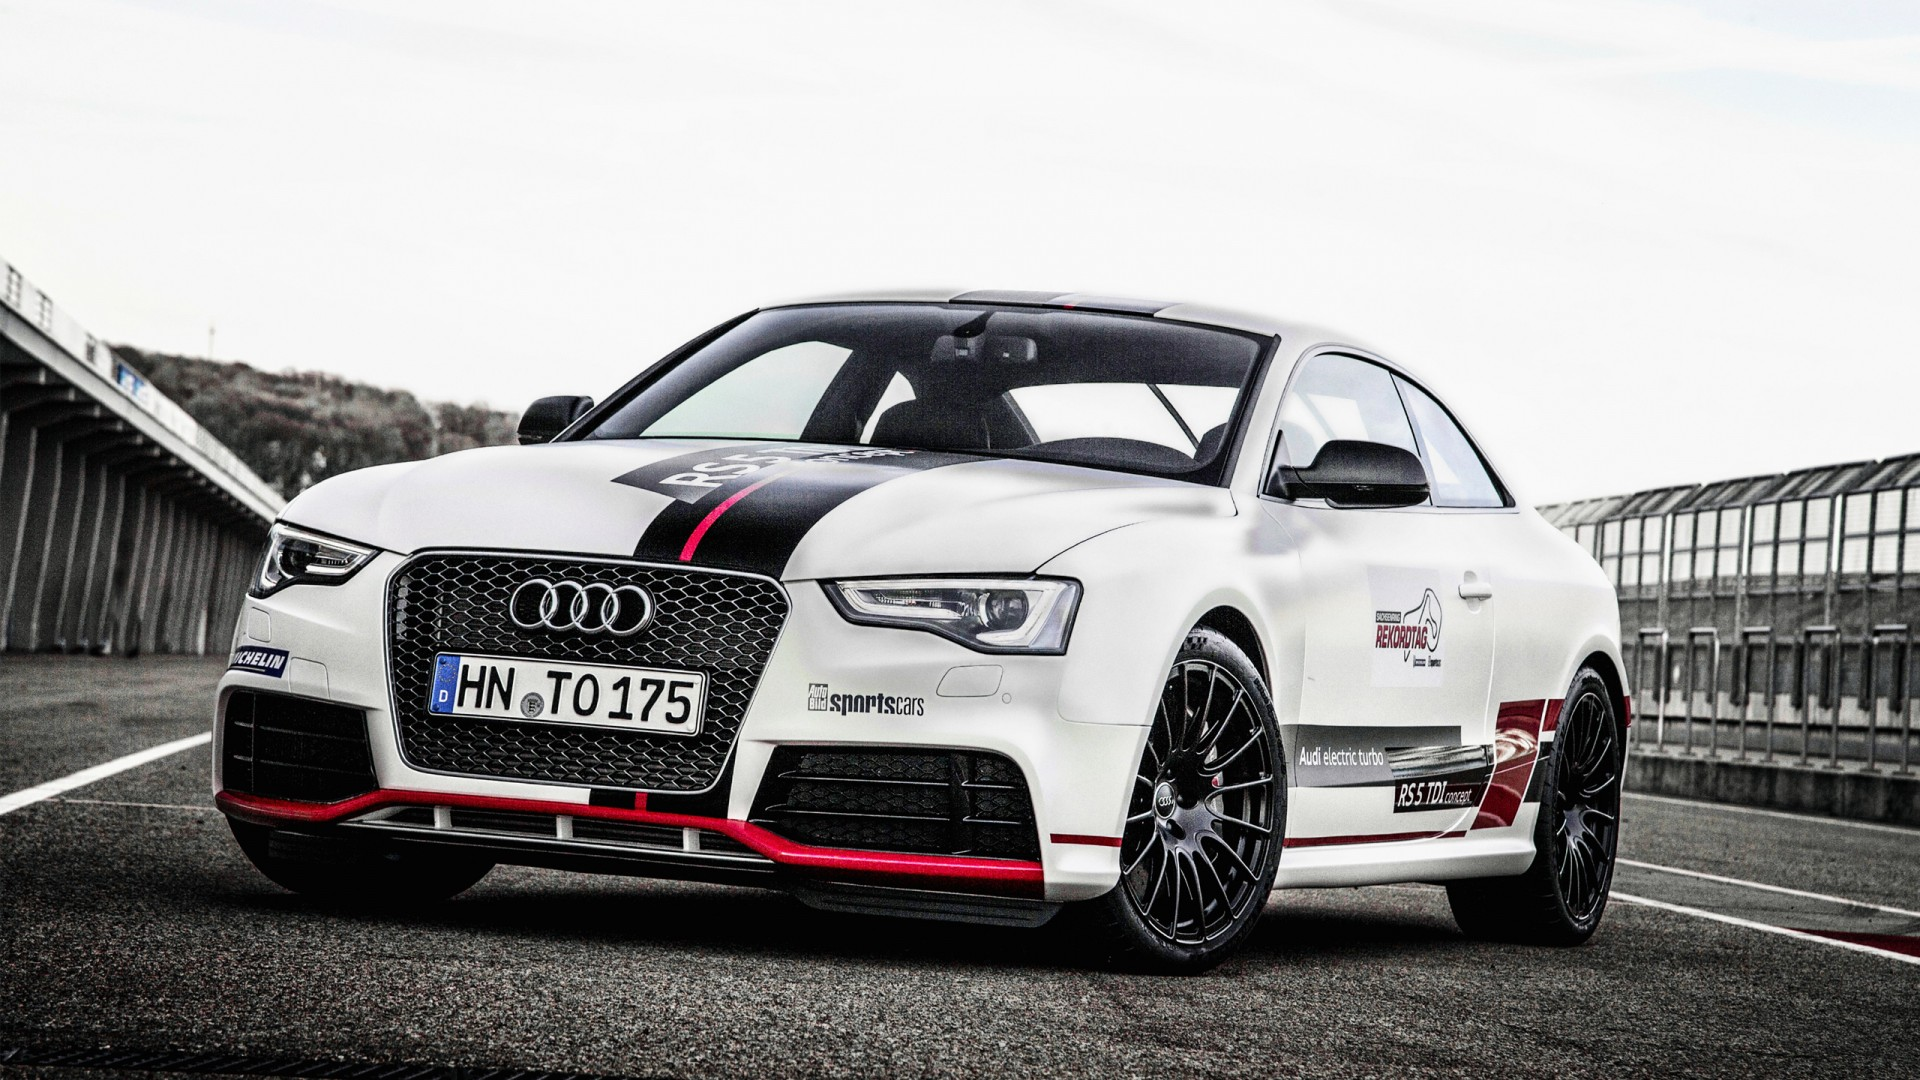 2015 Audi Rs 5 Tdi Wallpaper Hd Car Wallpapers Id 5406